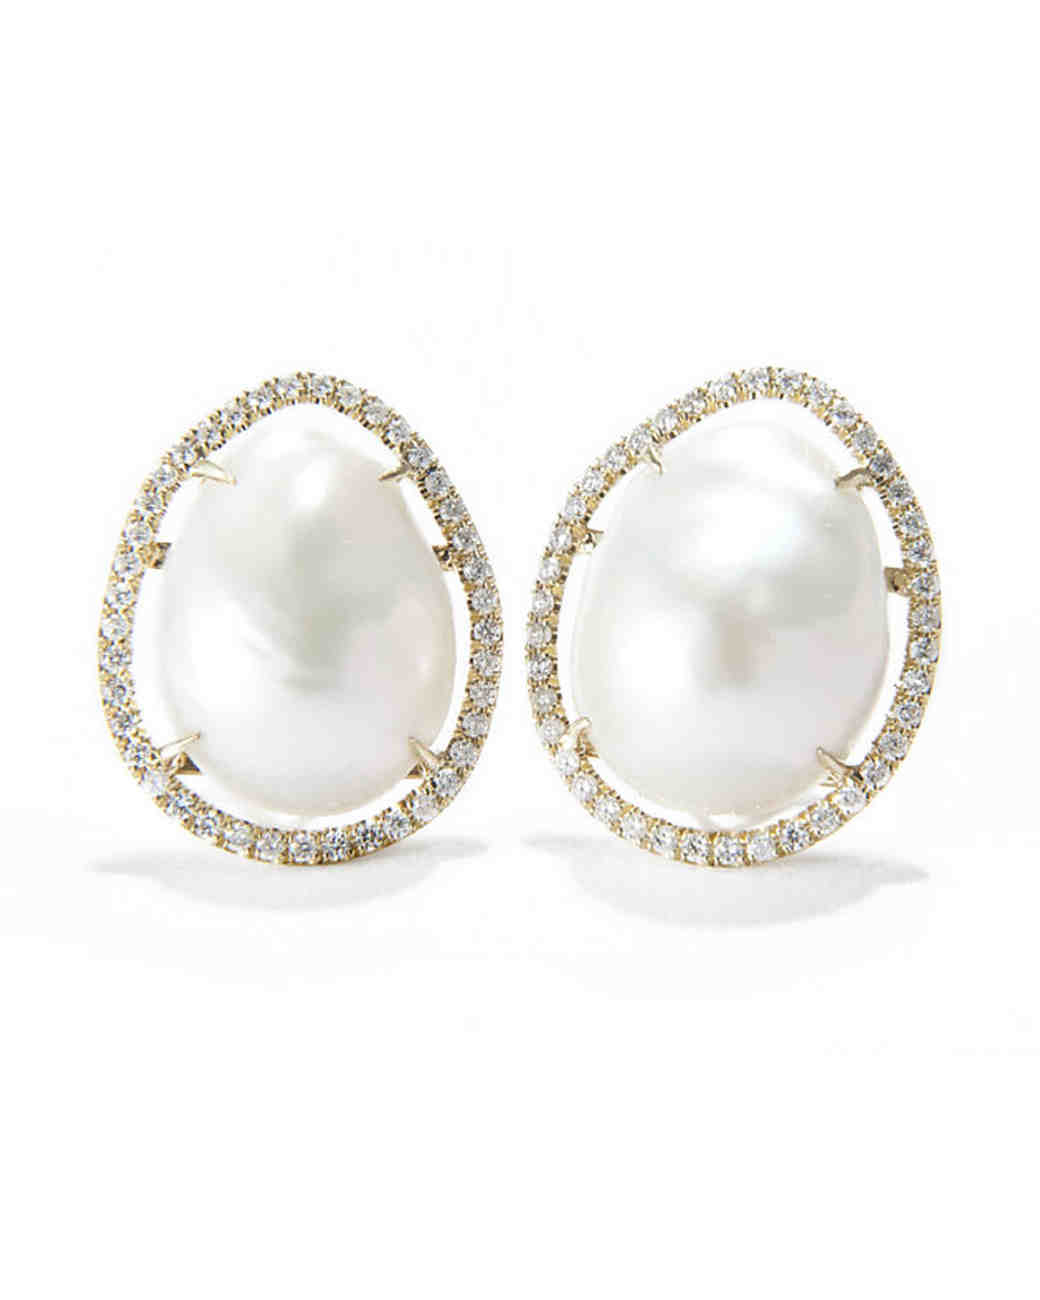 pearls-jordan-alexander-pave-diamond-earrings-0216.jpg